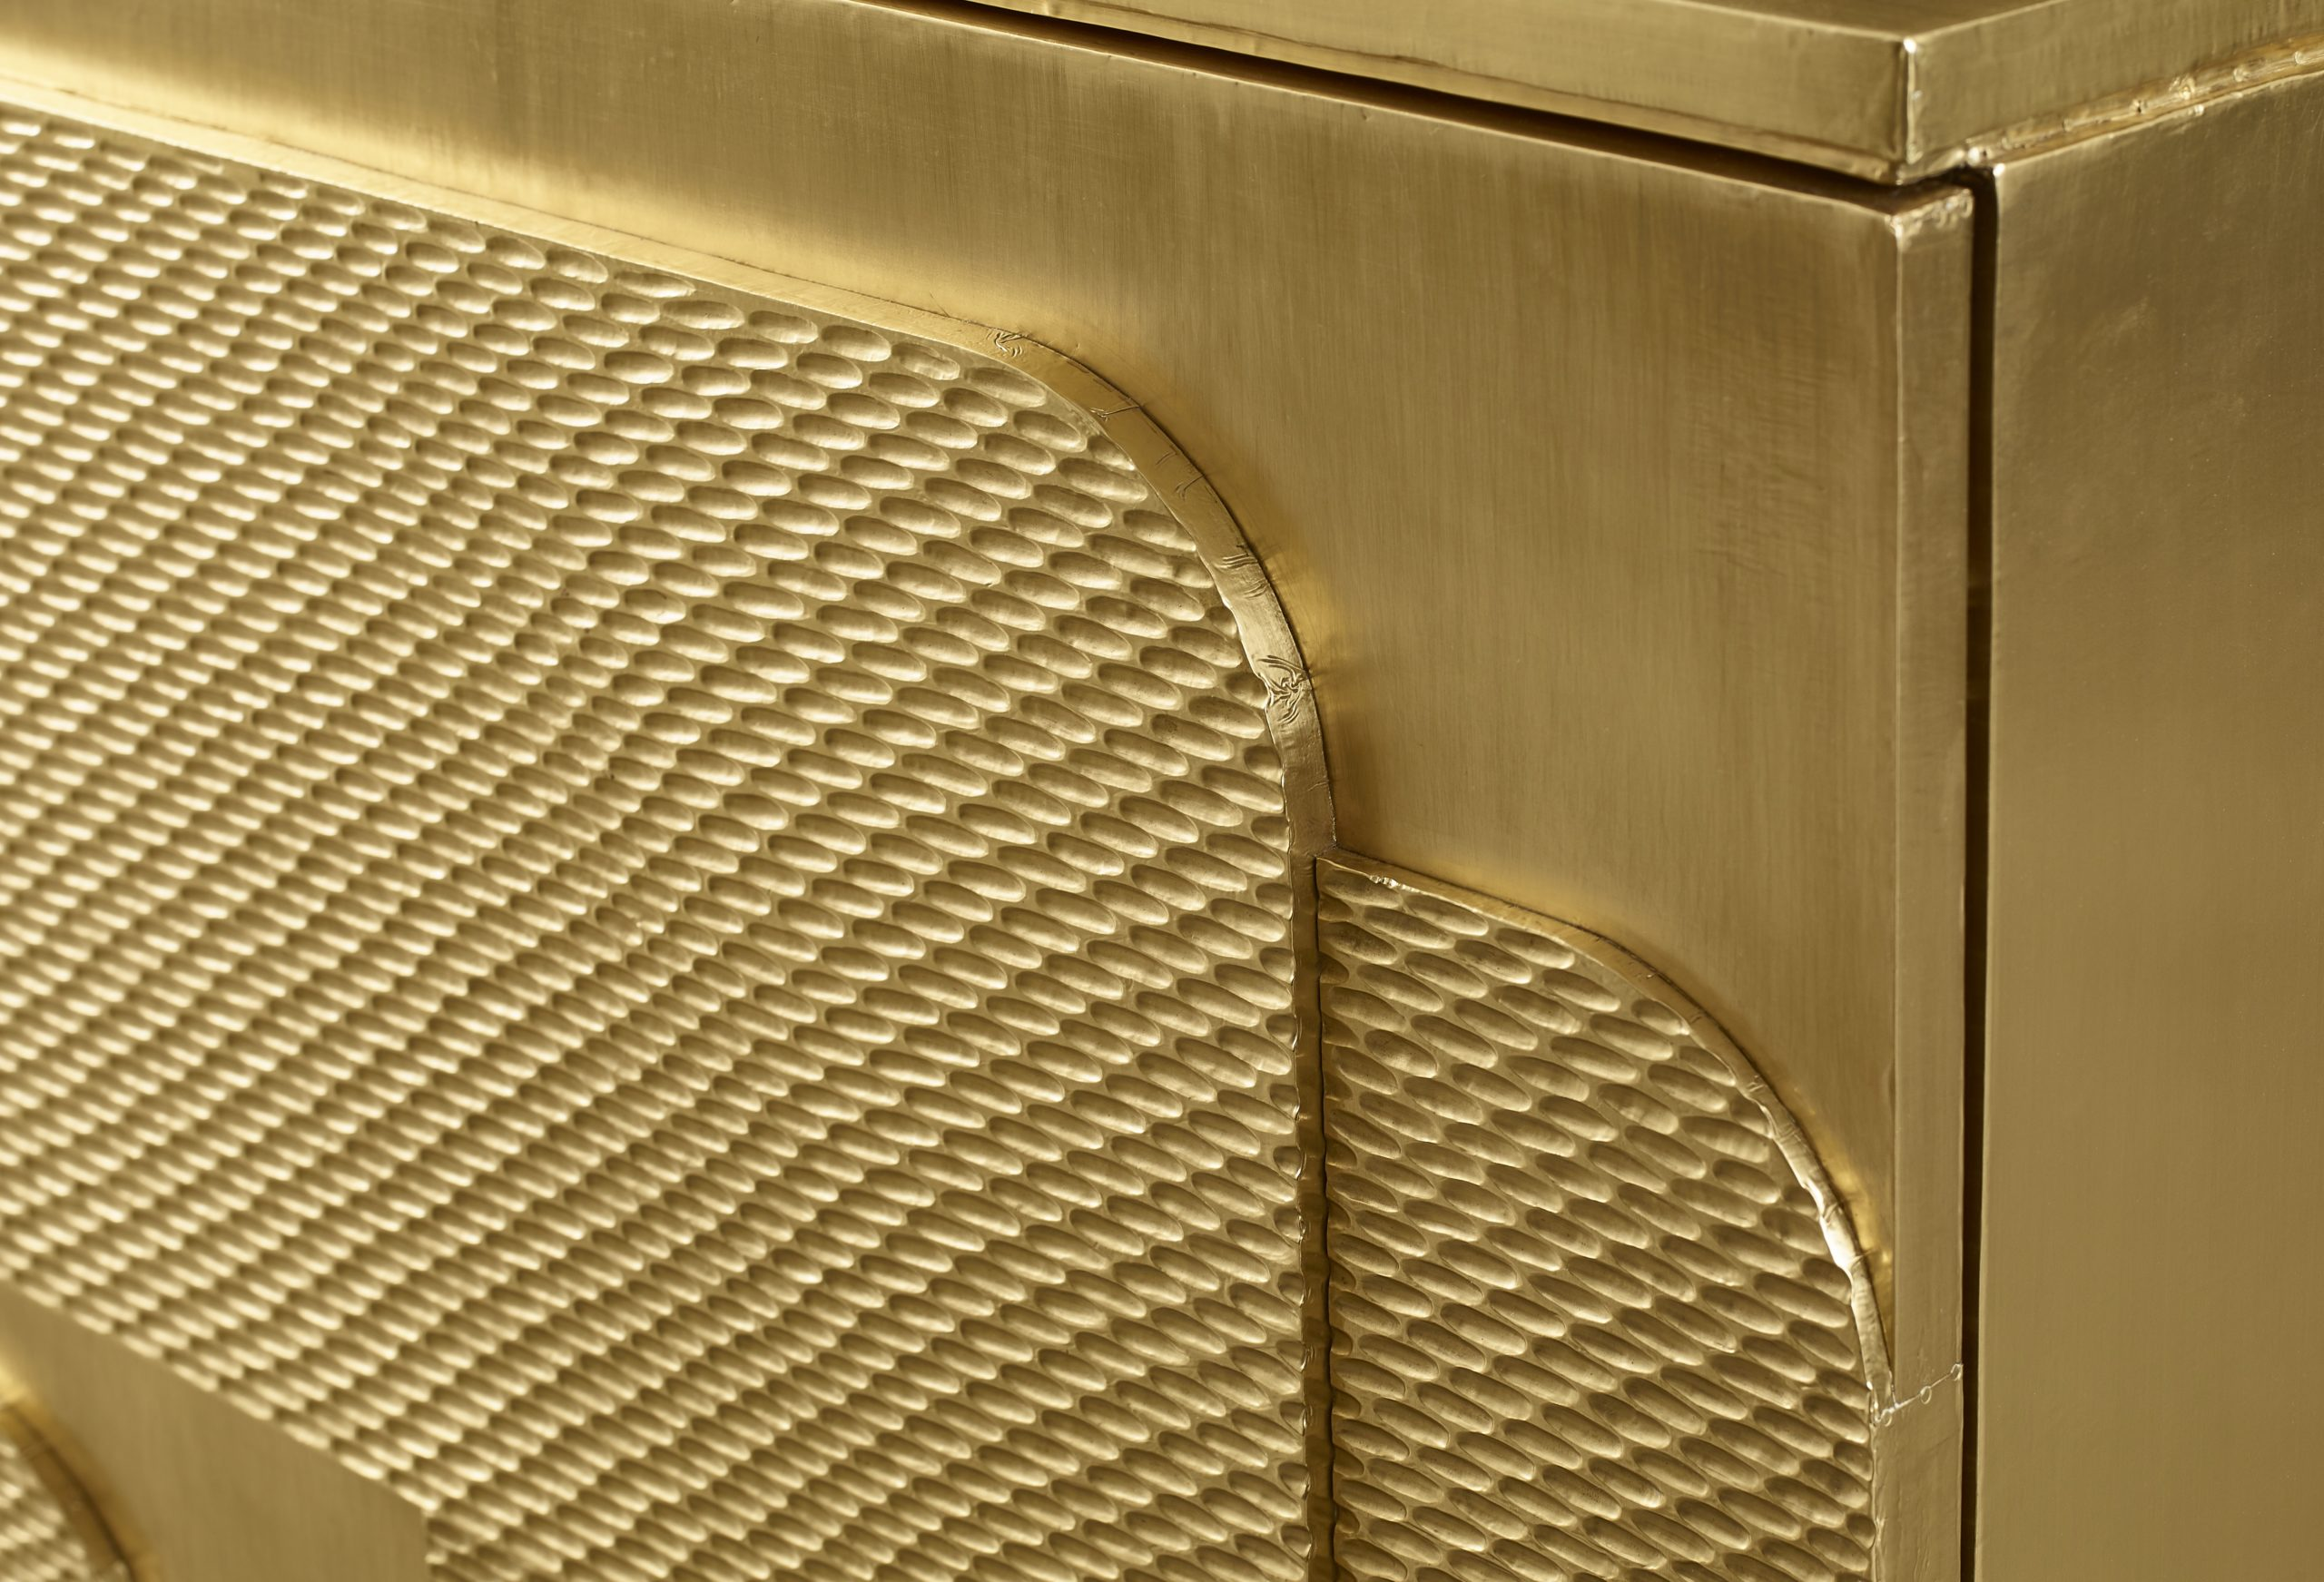 Baker_products_WNWN_milanese_chest_BAA3073_DETAIL-scaled-2